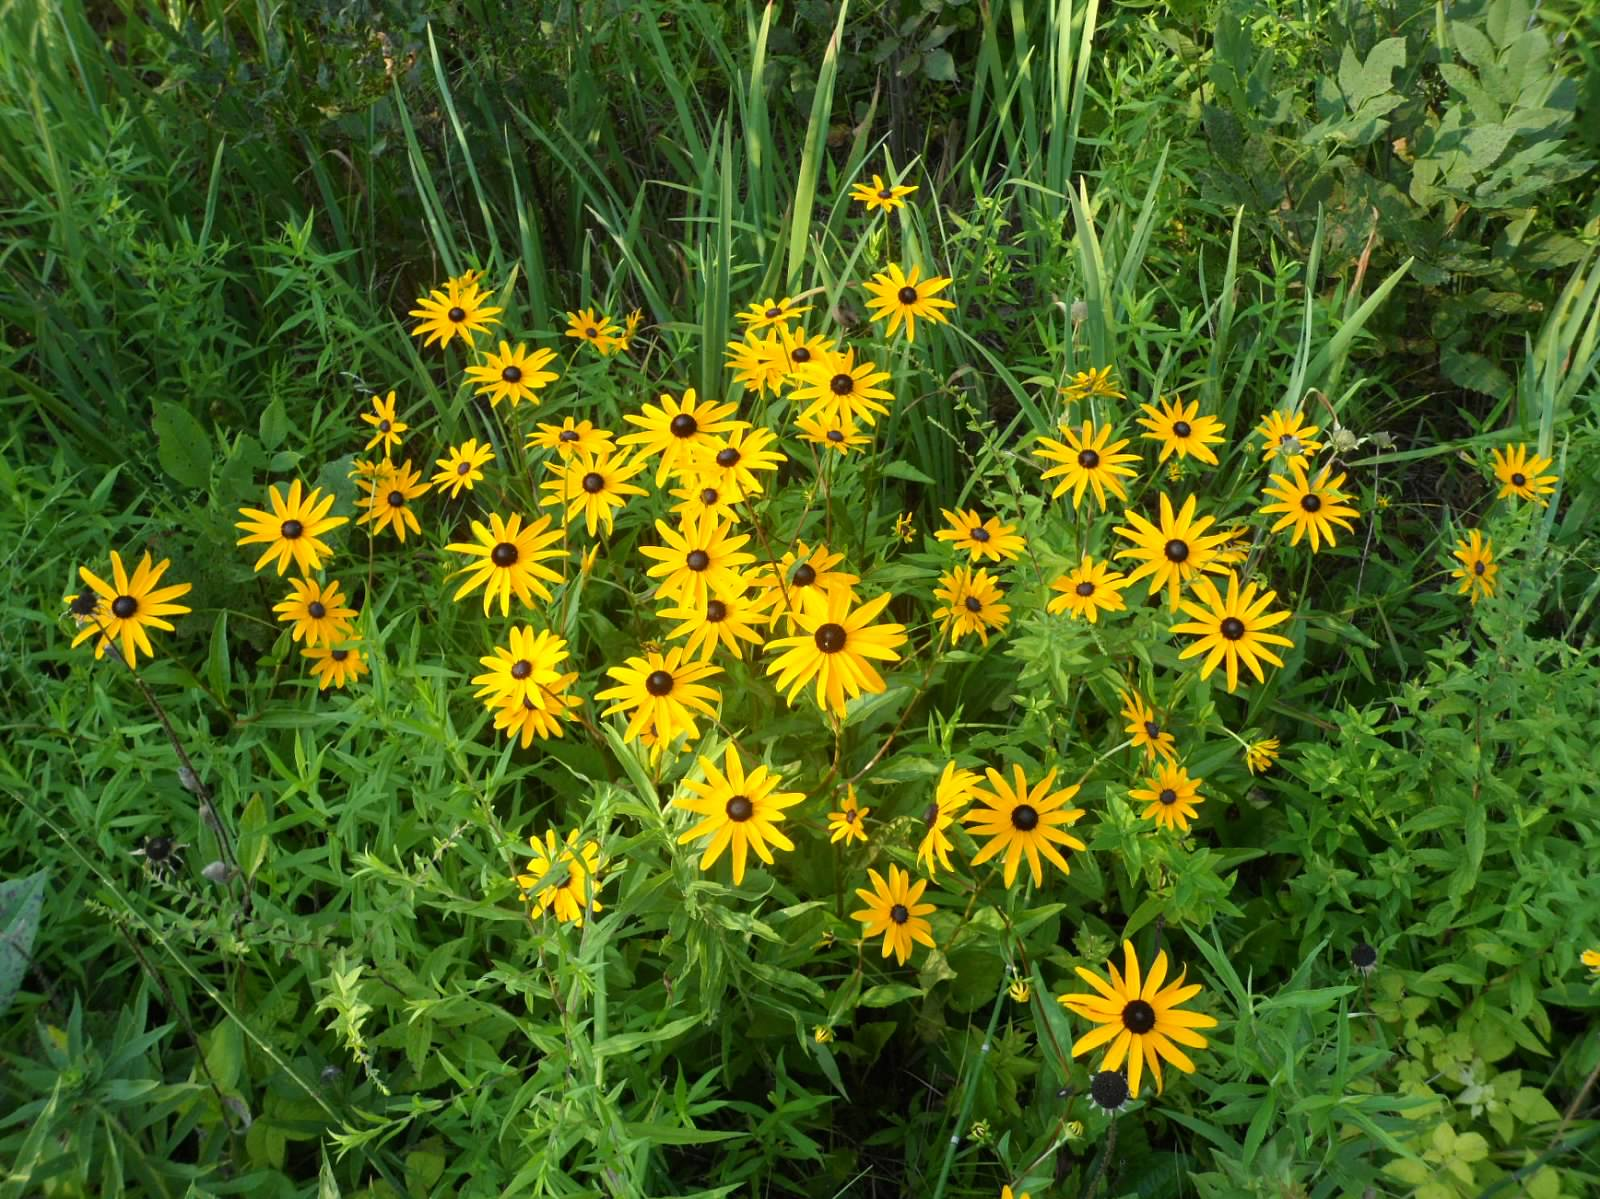 Black Eyed Susan Pere Marquette Rail Trail Wildflowers